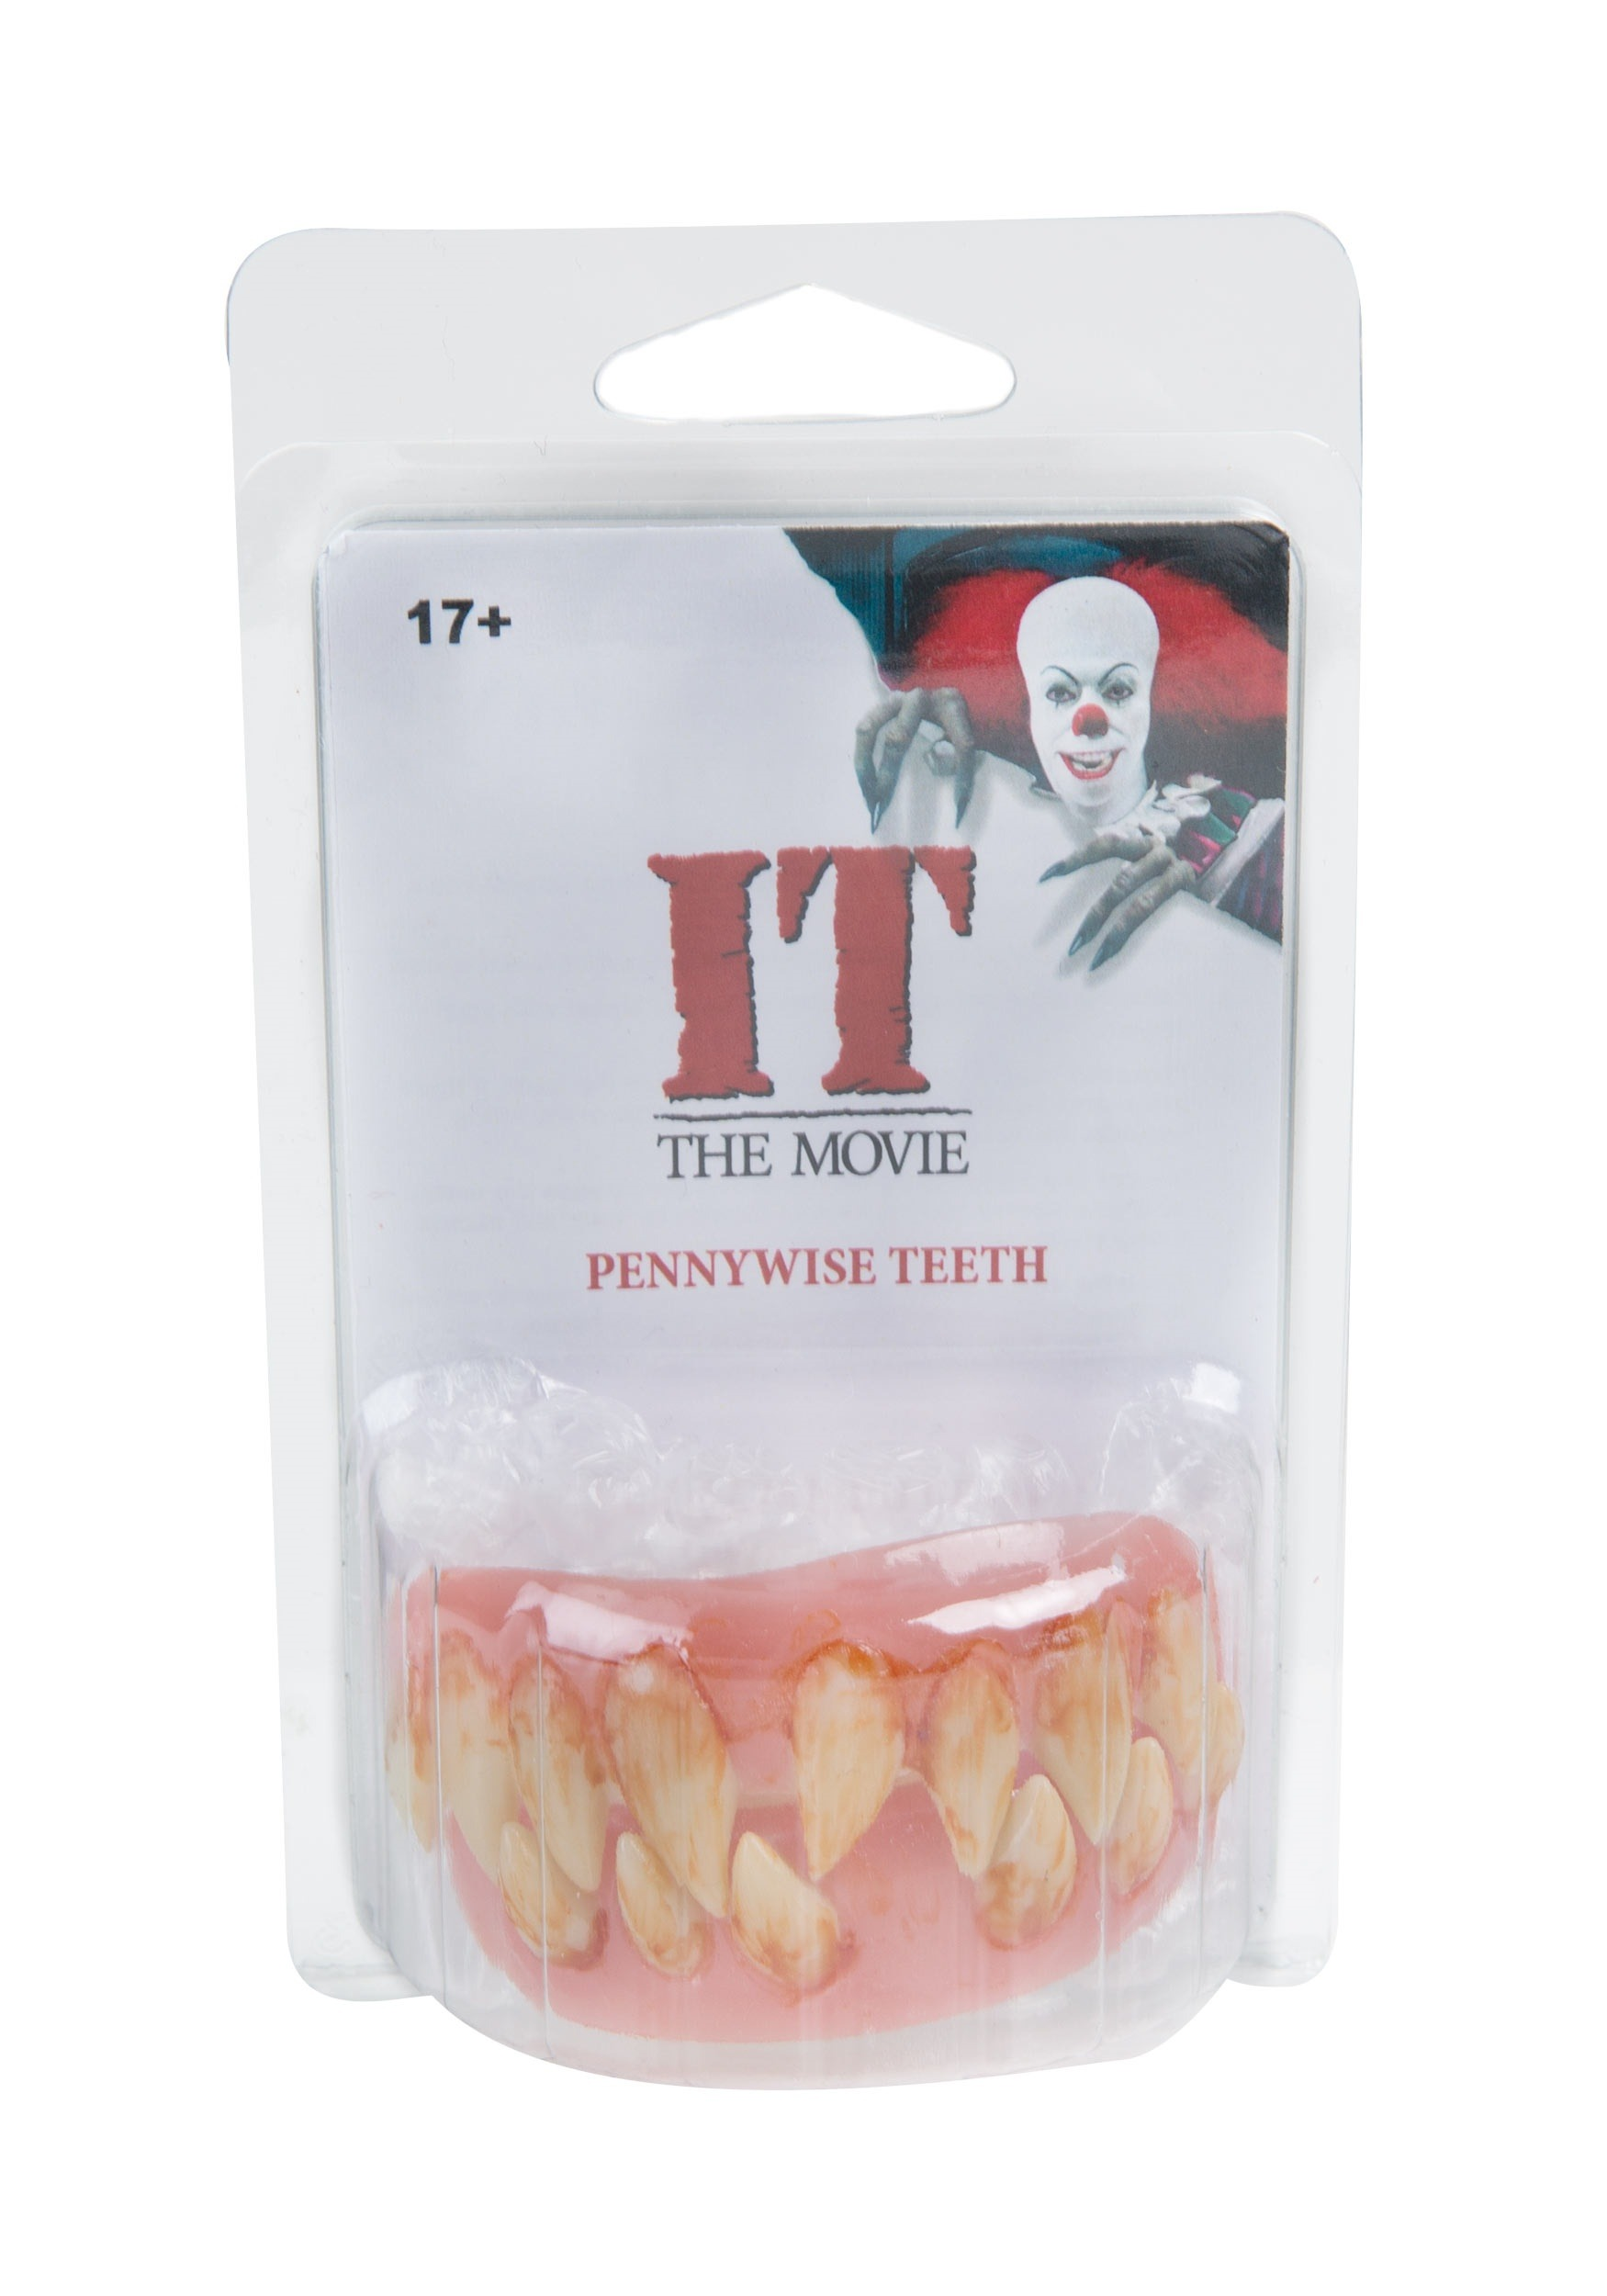 Stephen King Pennywise Teeth From It